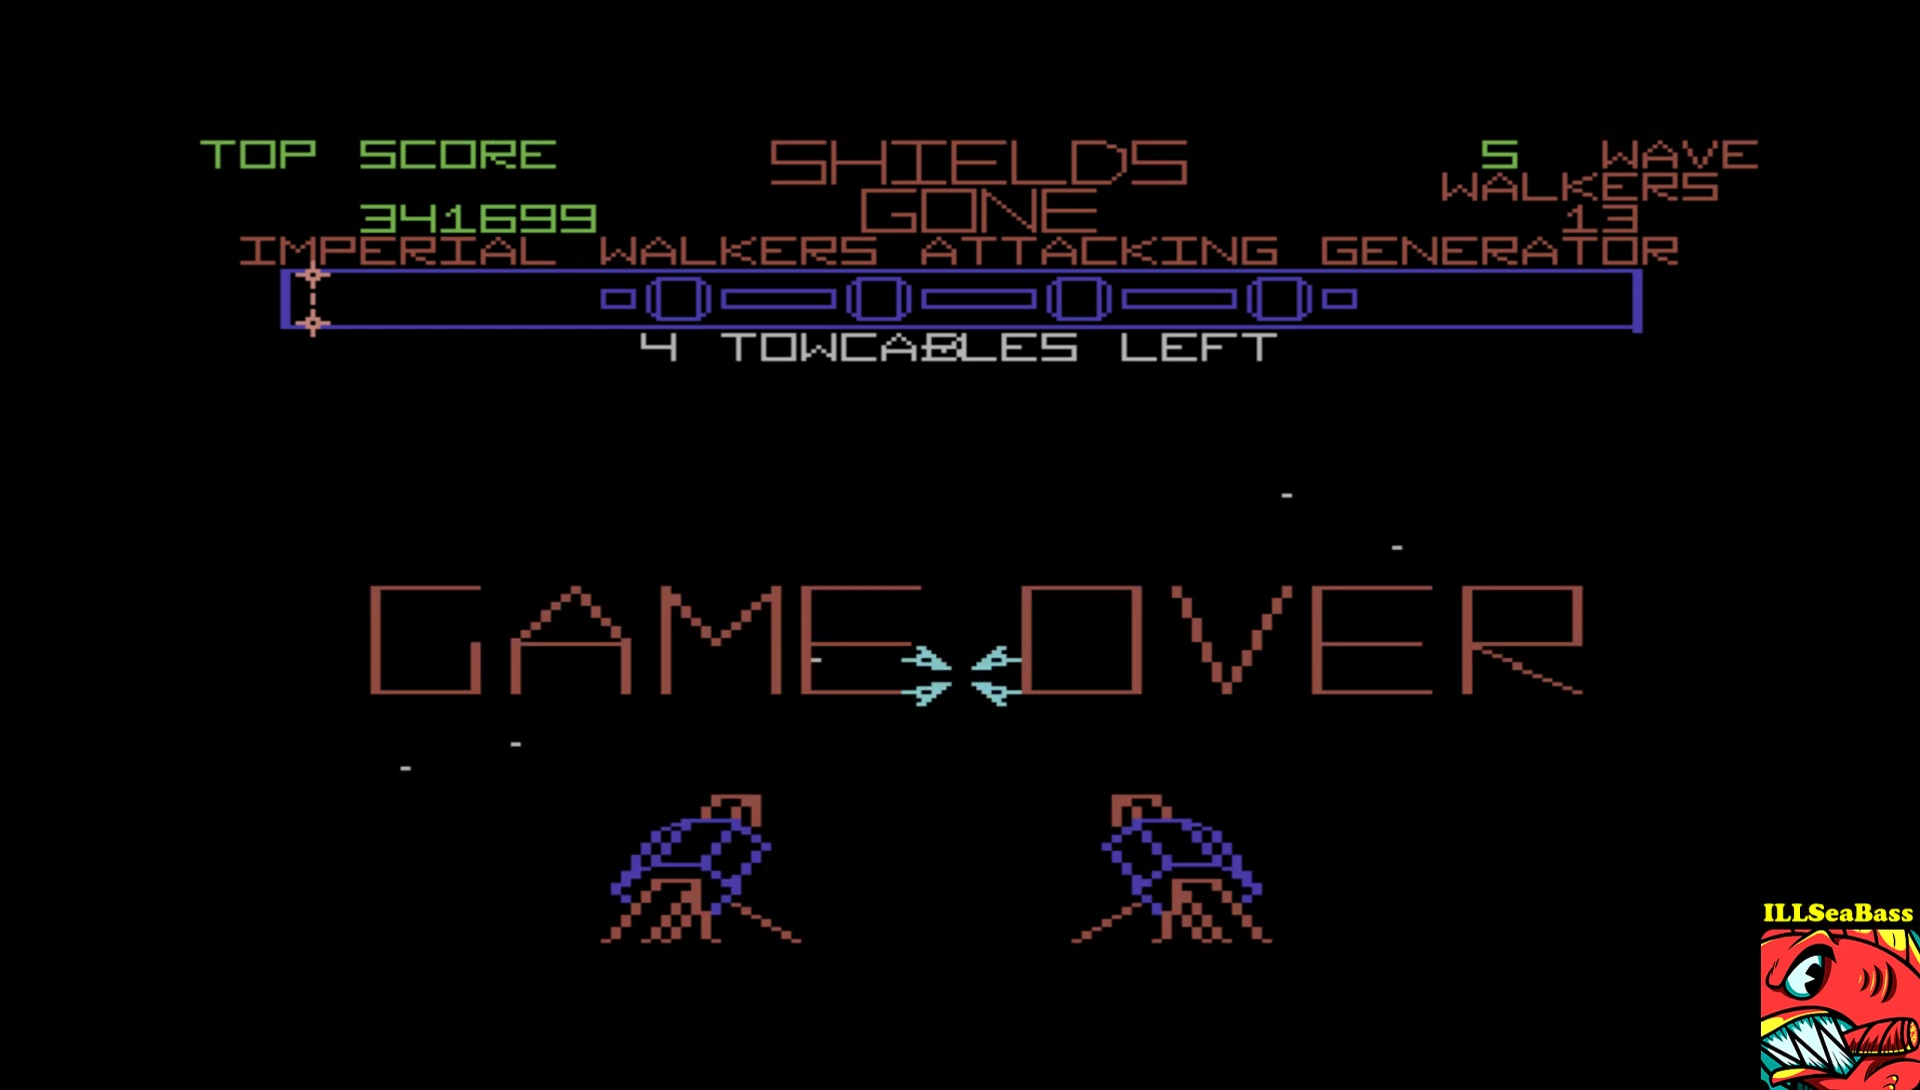 ILLSeaBass: The Empire Strikes Back [Wave 3: Hard] (Commodore 64 Emulated) 341,699 points on 2017-04-27 12:02:25